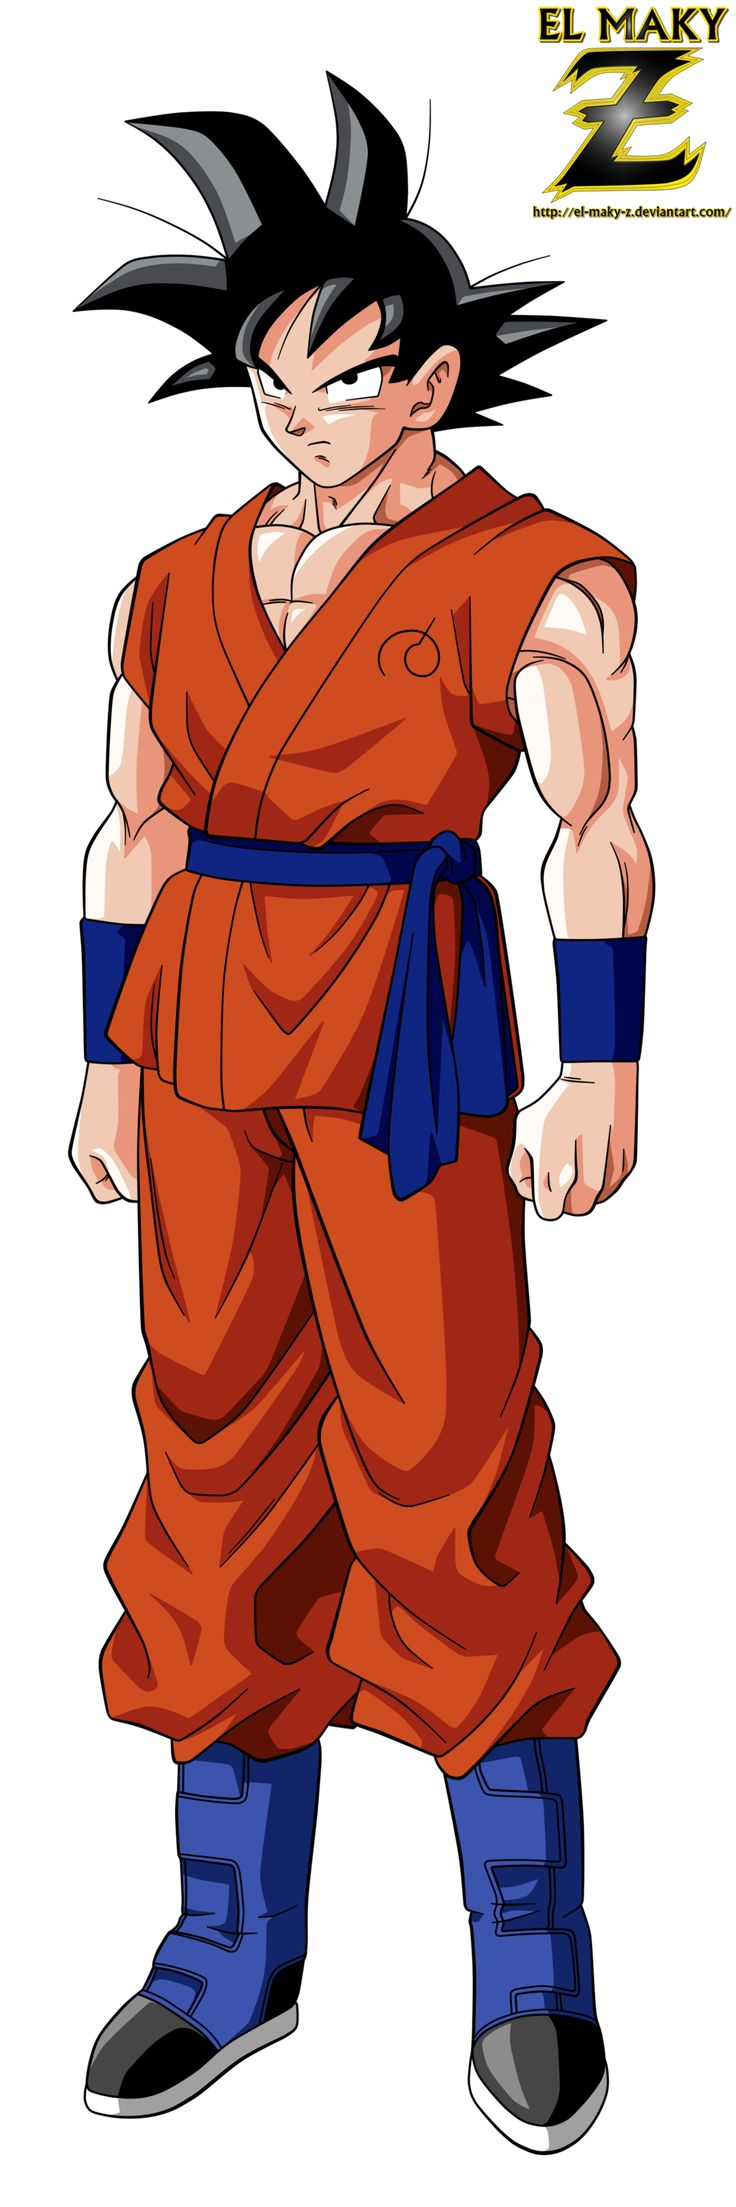 54 best images about dragon ball renders on pinterest - Dragon ball z goku son ...